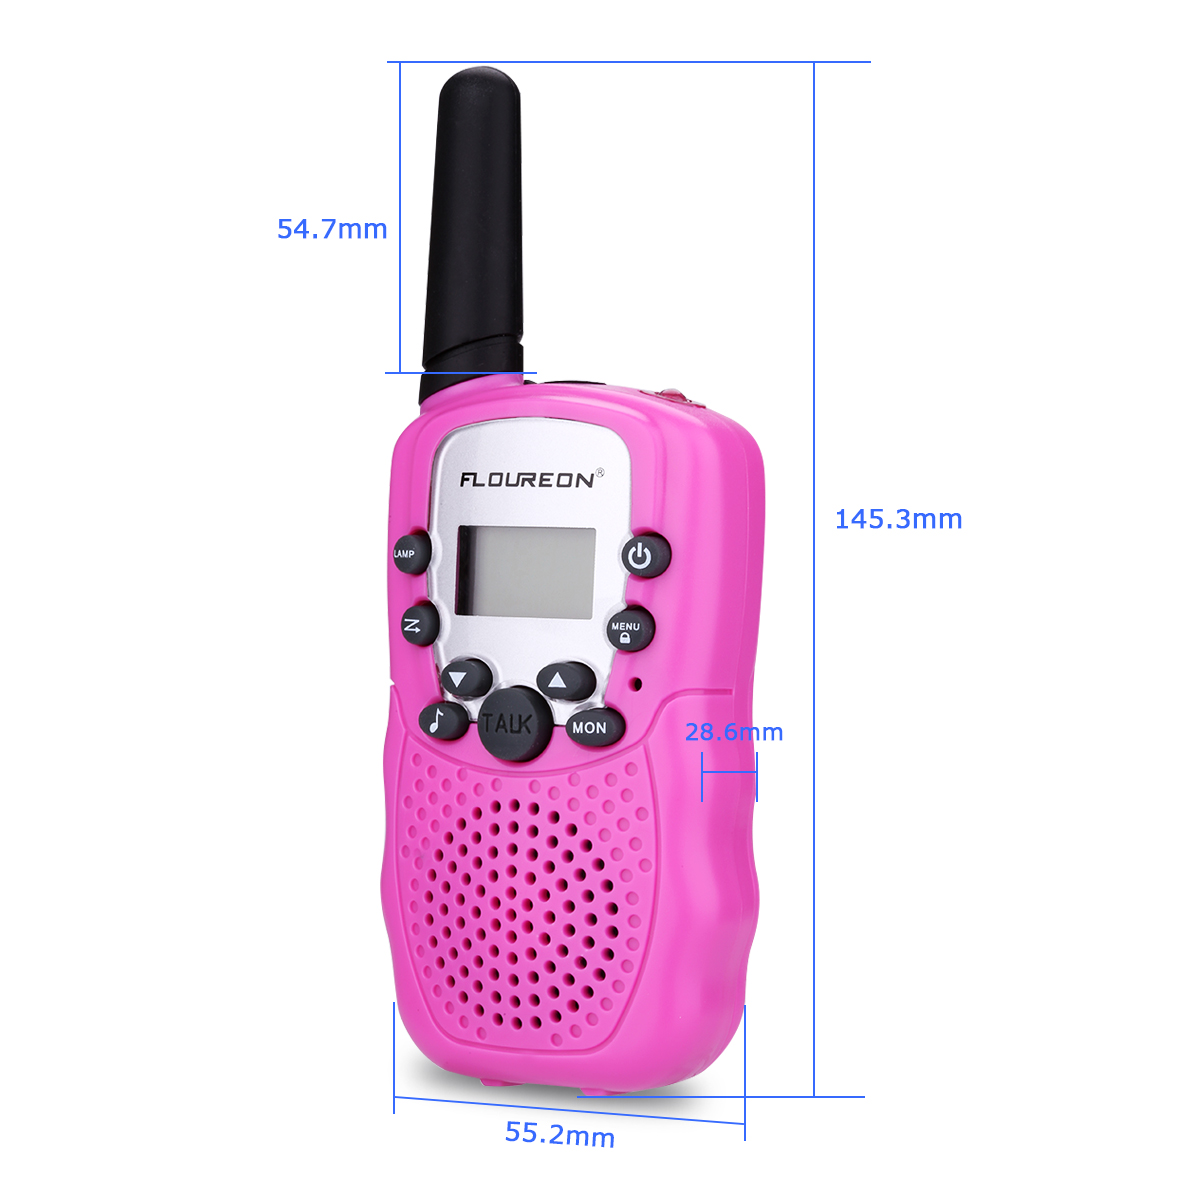 FLOUREON 8 Channel Twin Walkie Talkies UHF400-470MHZ PMR446 2-Way Radio  Handheld Kid Toys Intercom 3km Walkie Talkie Transceiver